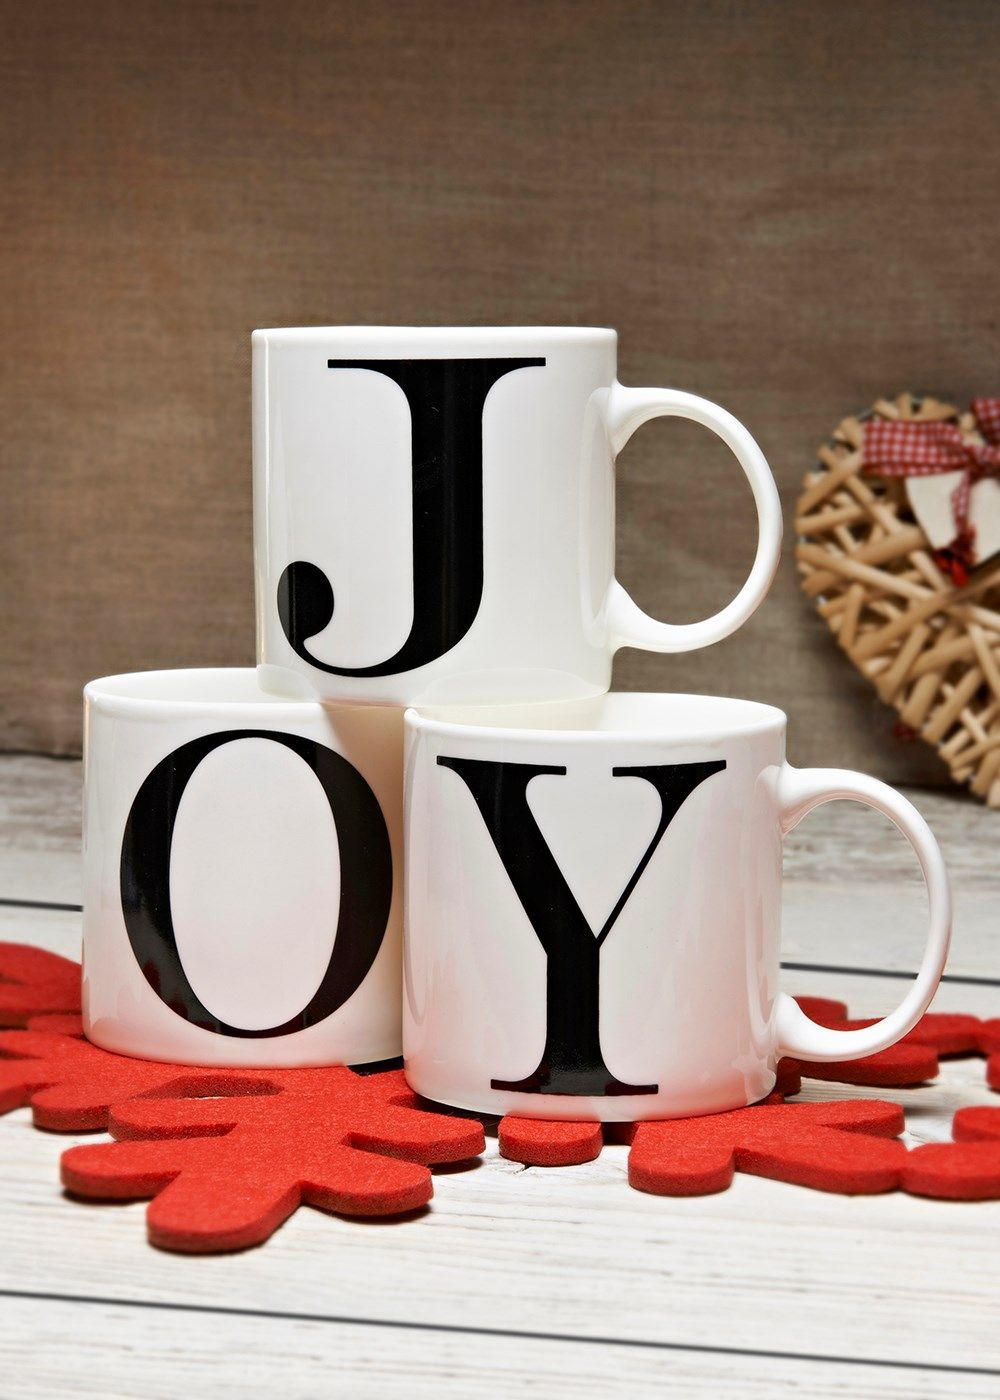 Dining Dining Table Sets Furniture Accessories Alphabet Mugs Letter Mugs Mugs